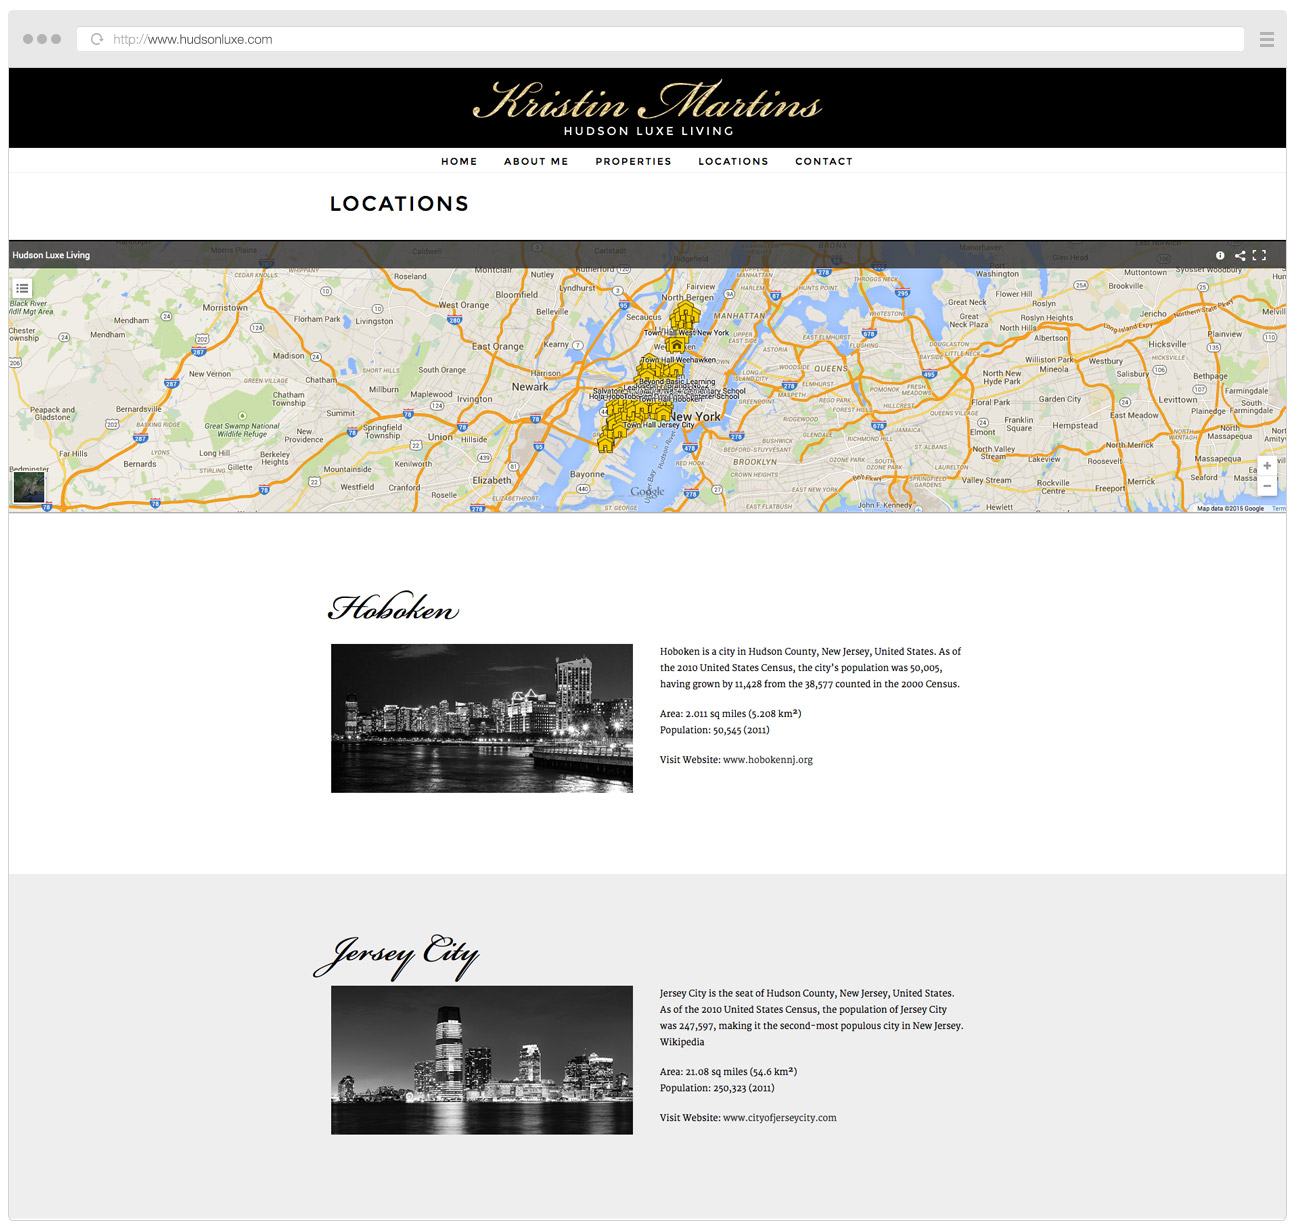 hudsonluxe-website2